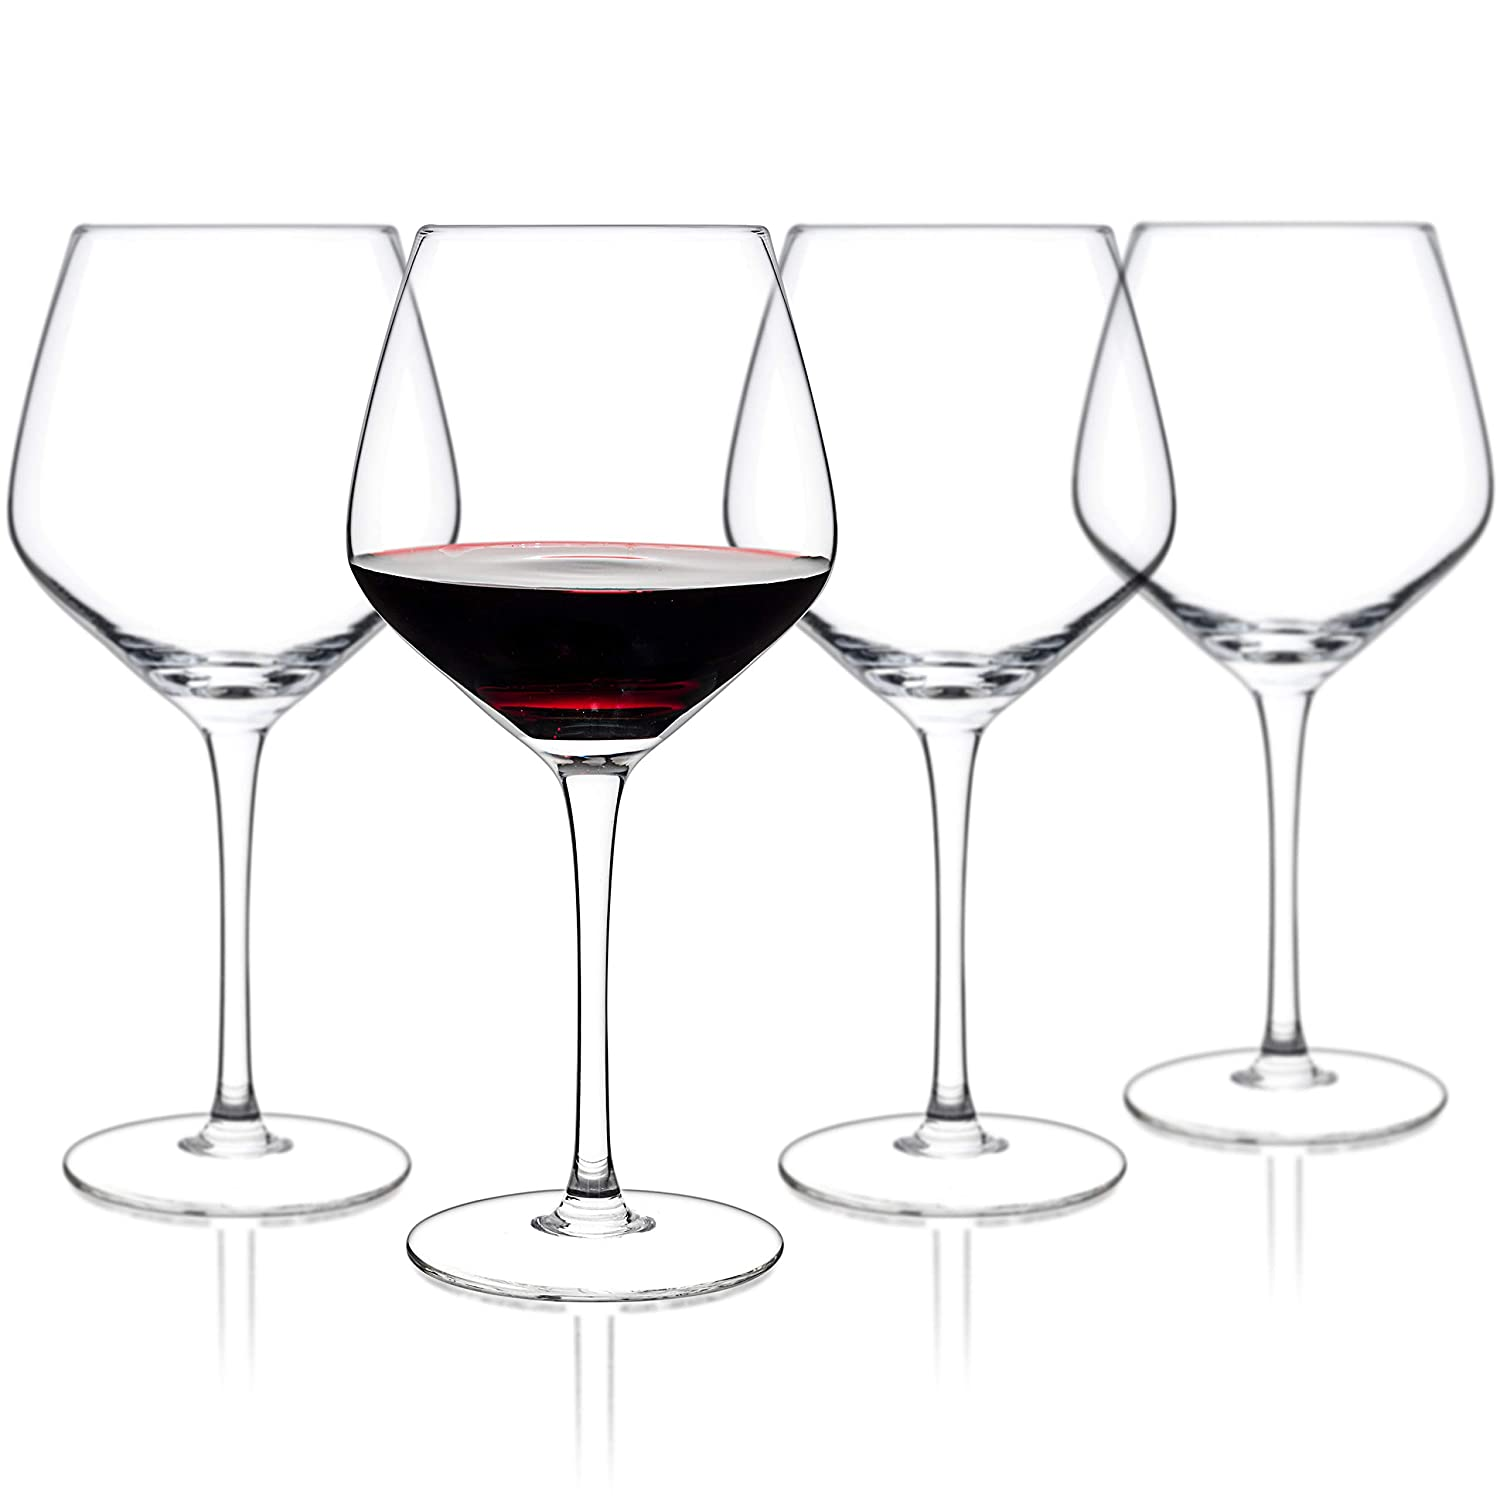 9d73e047cd9 Luxbe - Crystal Wine Glasses 21-ounce, Set of 4 - Large Handcrafted Red or  White Wine Glass - 100% Lead Free Crystal Glass - Professional Wine Tasting  ...